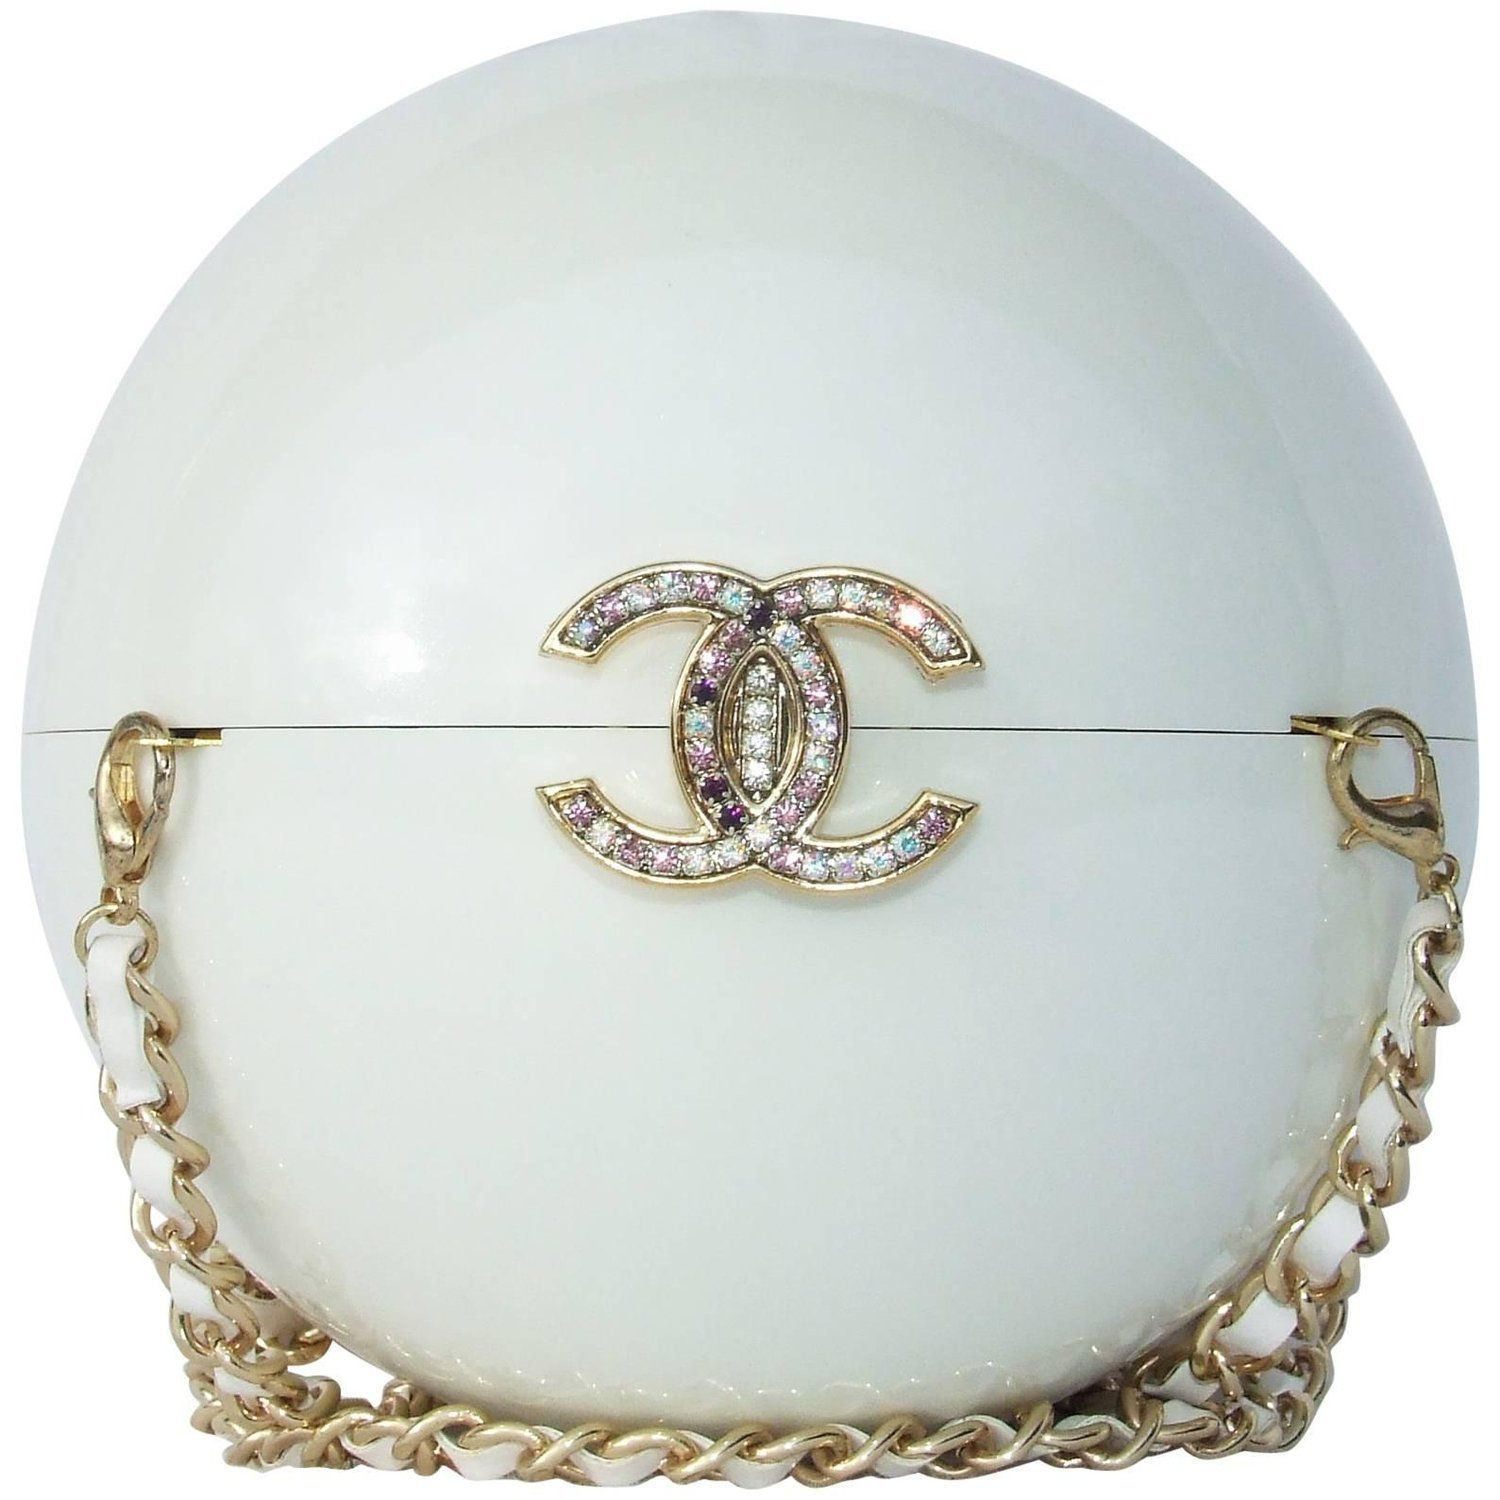 dd82022cca4e04 Chanel Pearl Shaped Ball Bag Minaudiere Clutch Plexiglass VIP Limited  Collector